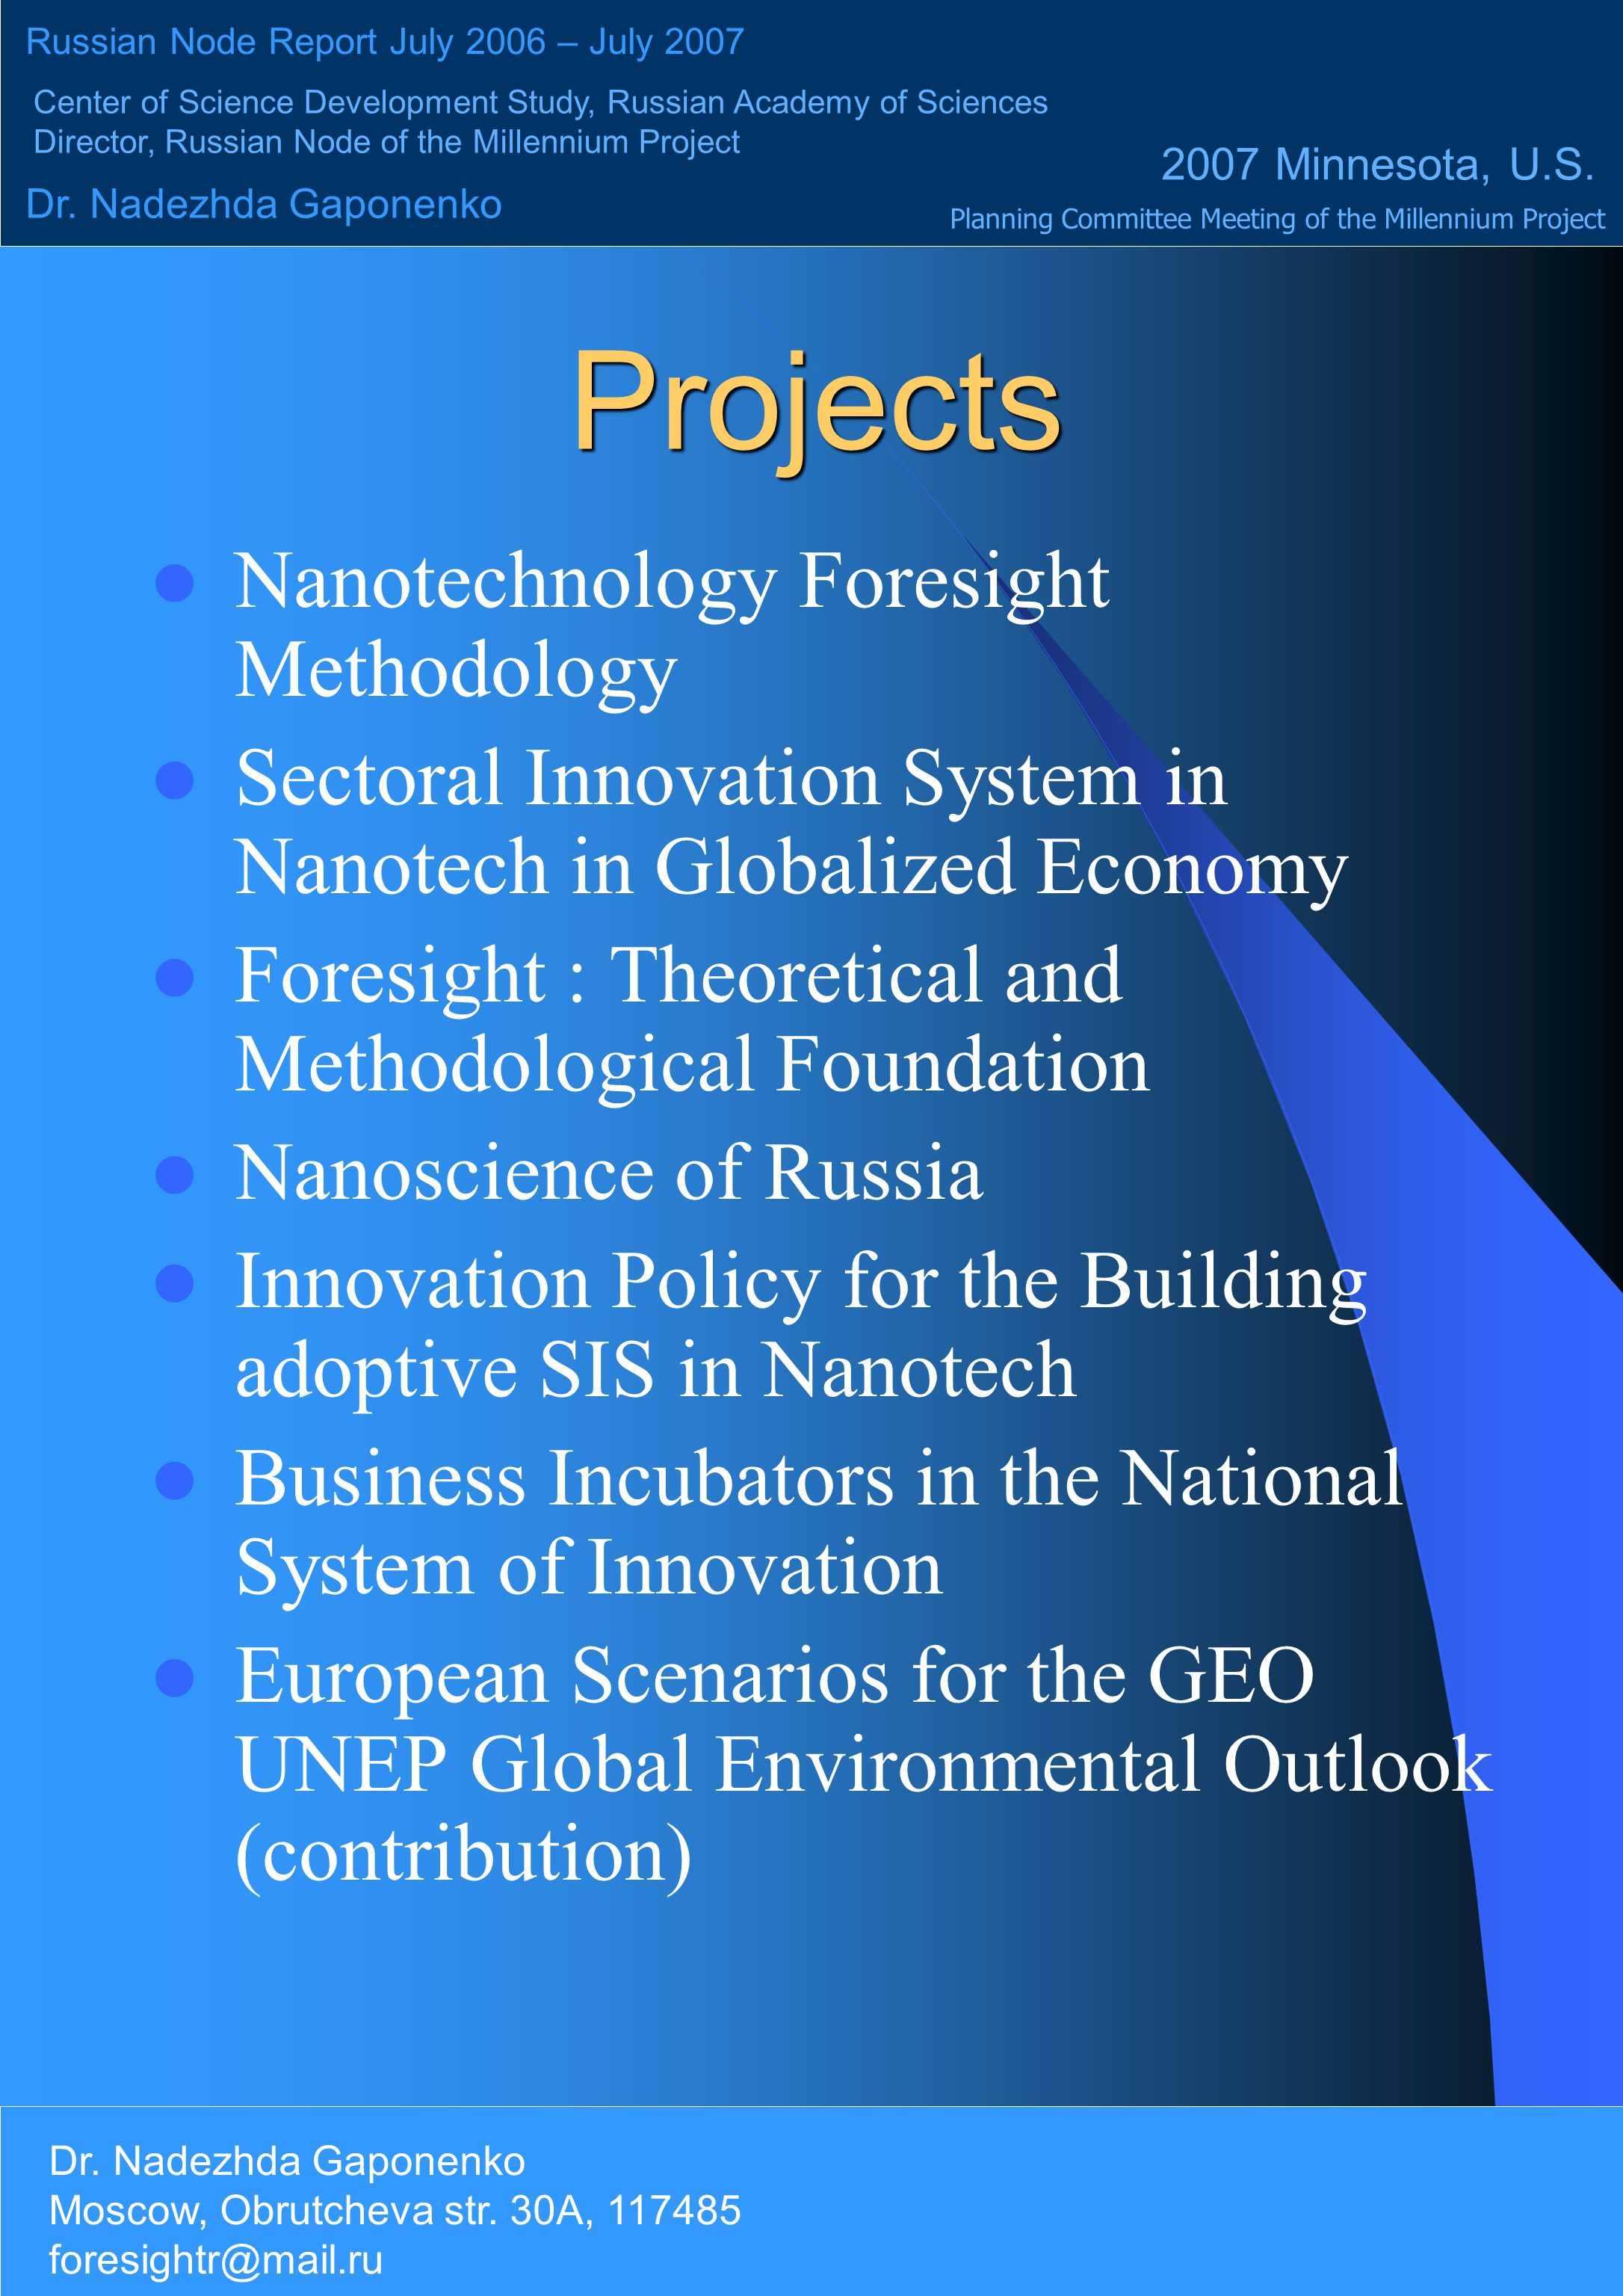 Projects Nanotechnology Foresight Methodology Sectoral Innovation System in Nanotech in Globalized Economy Foresight : Theoretical and Methodological Foundation Nanoscience of Russia Innovation Policy for the Building adoptive SIS in Nanotech Business Incubators in the National System of Innovation European Scenarios for the GEO UNEP Global Environmental Outlook (contribution) Russian Node Report July 2006 – July 2007 Center of Science Development Study, Russian Academy of Sciences Director, Russian Node of the Millennium Project Dr.